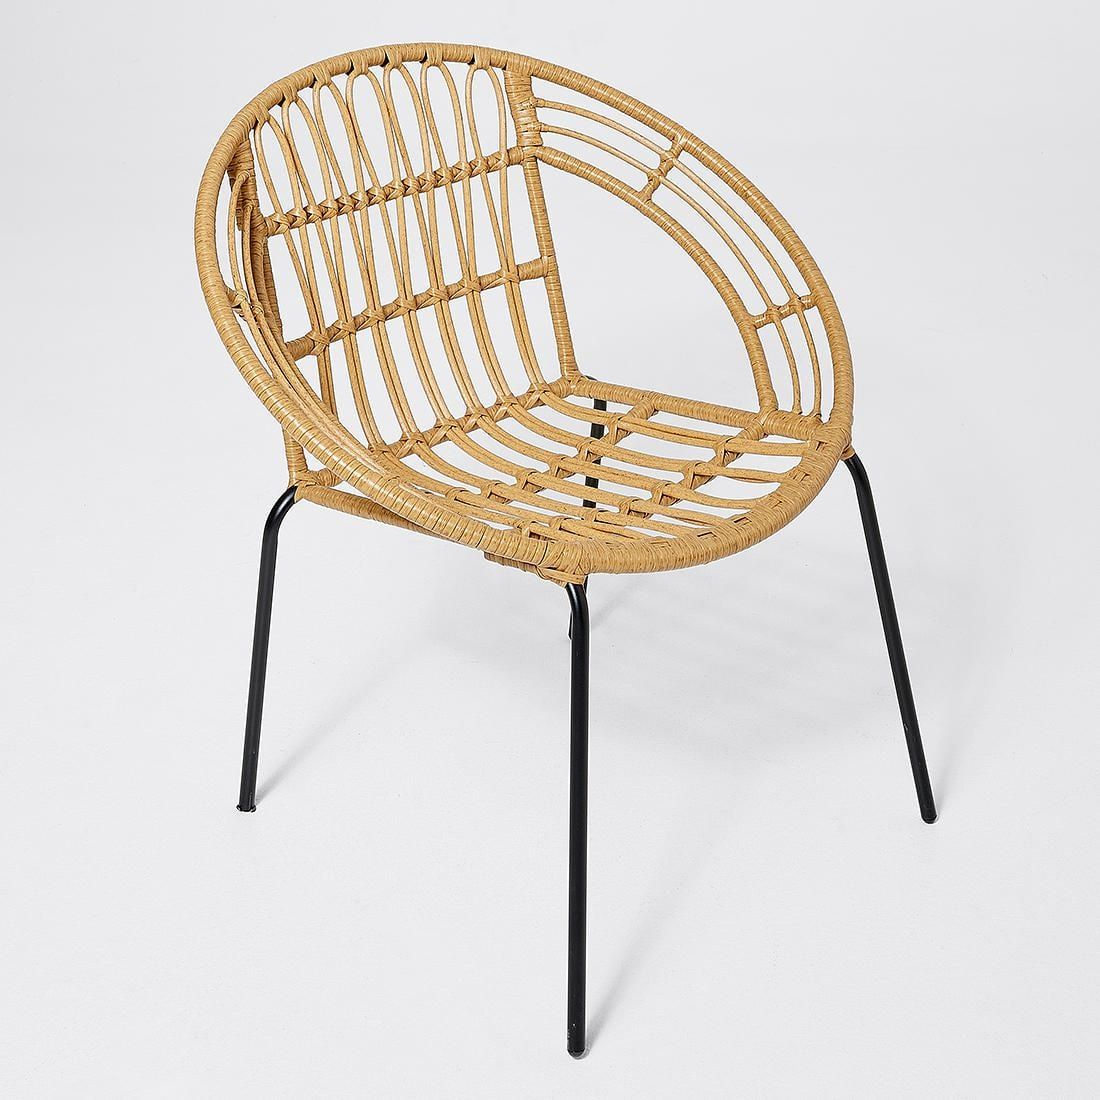 Willa Woven Rattan Chair | Chair, Woven chair, Occasional ...